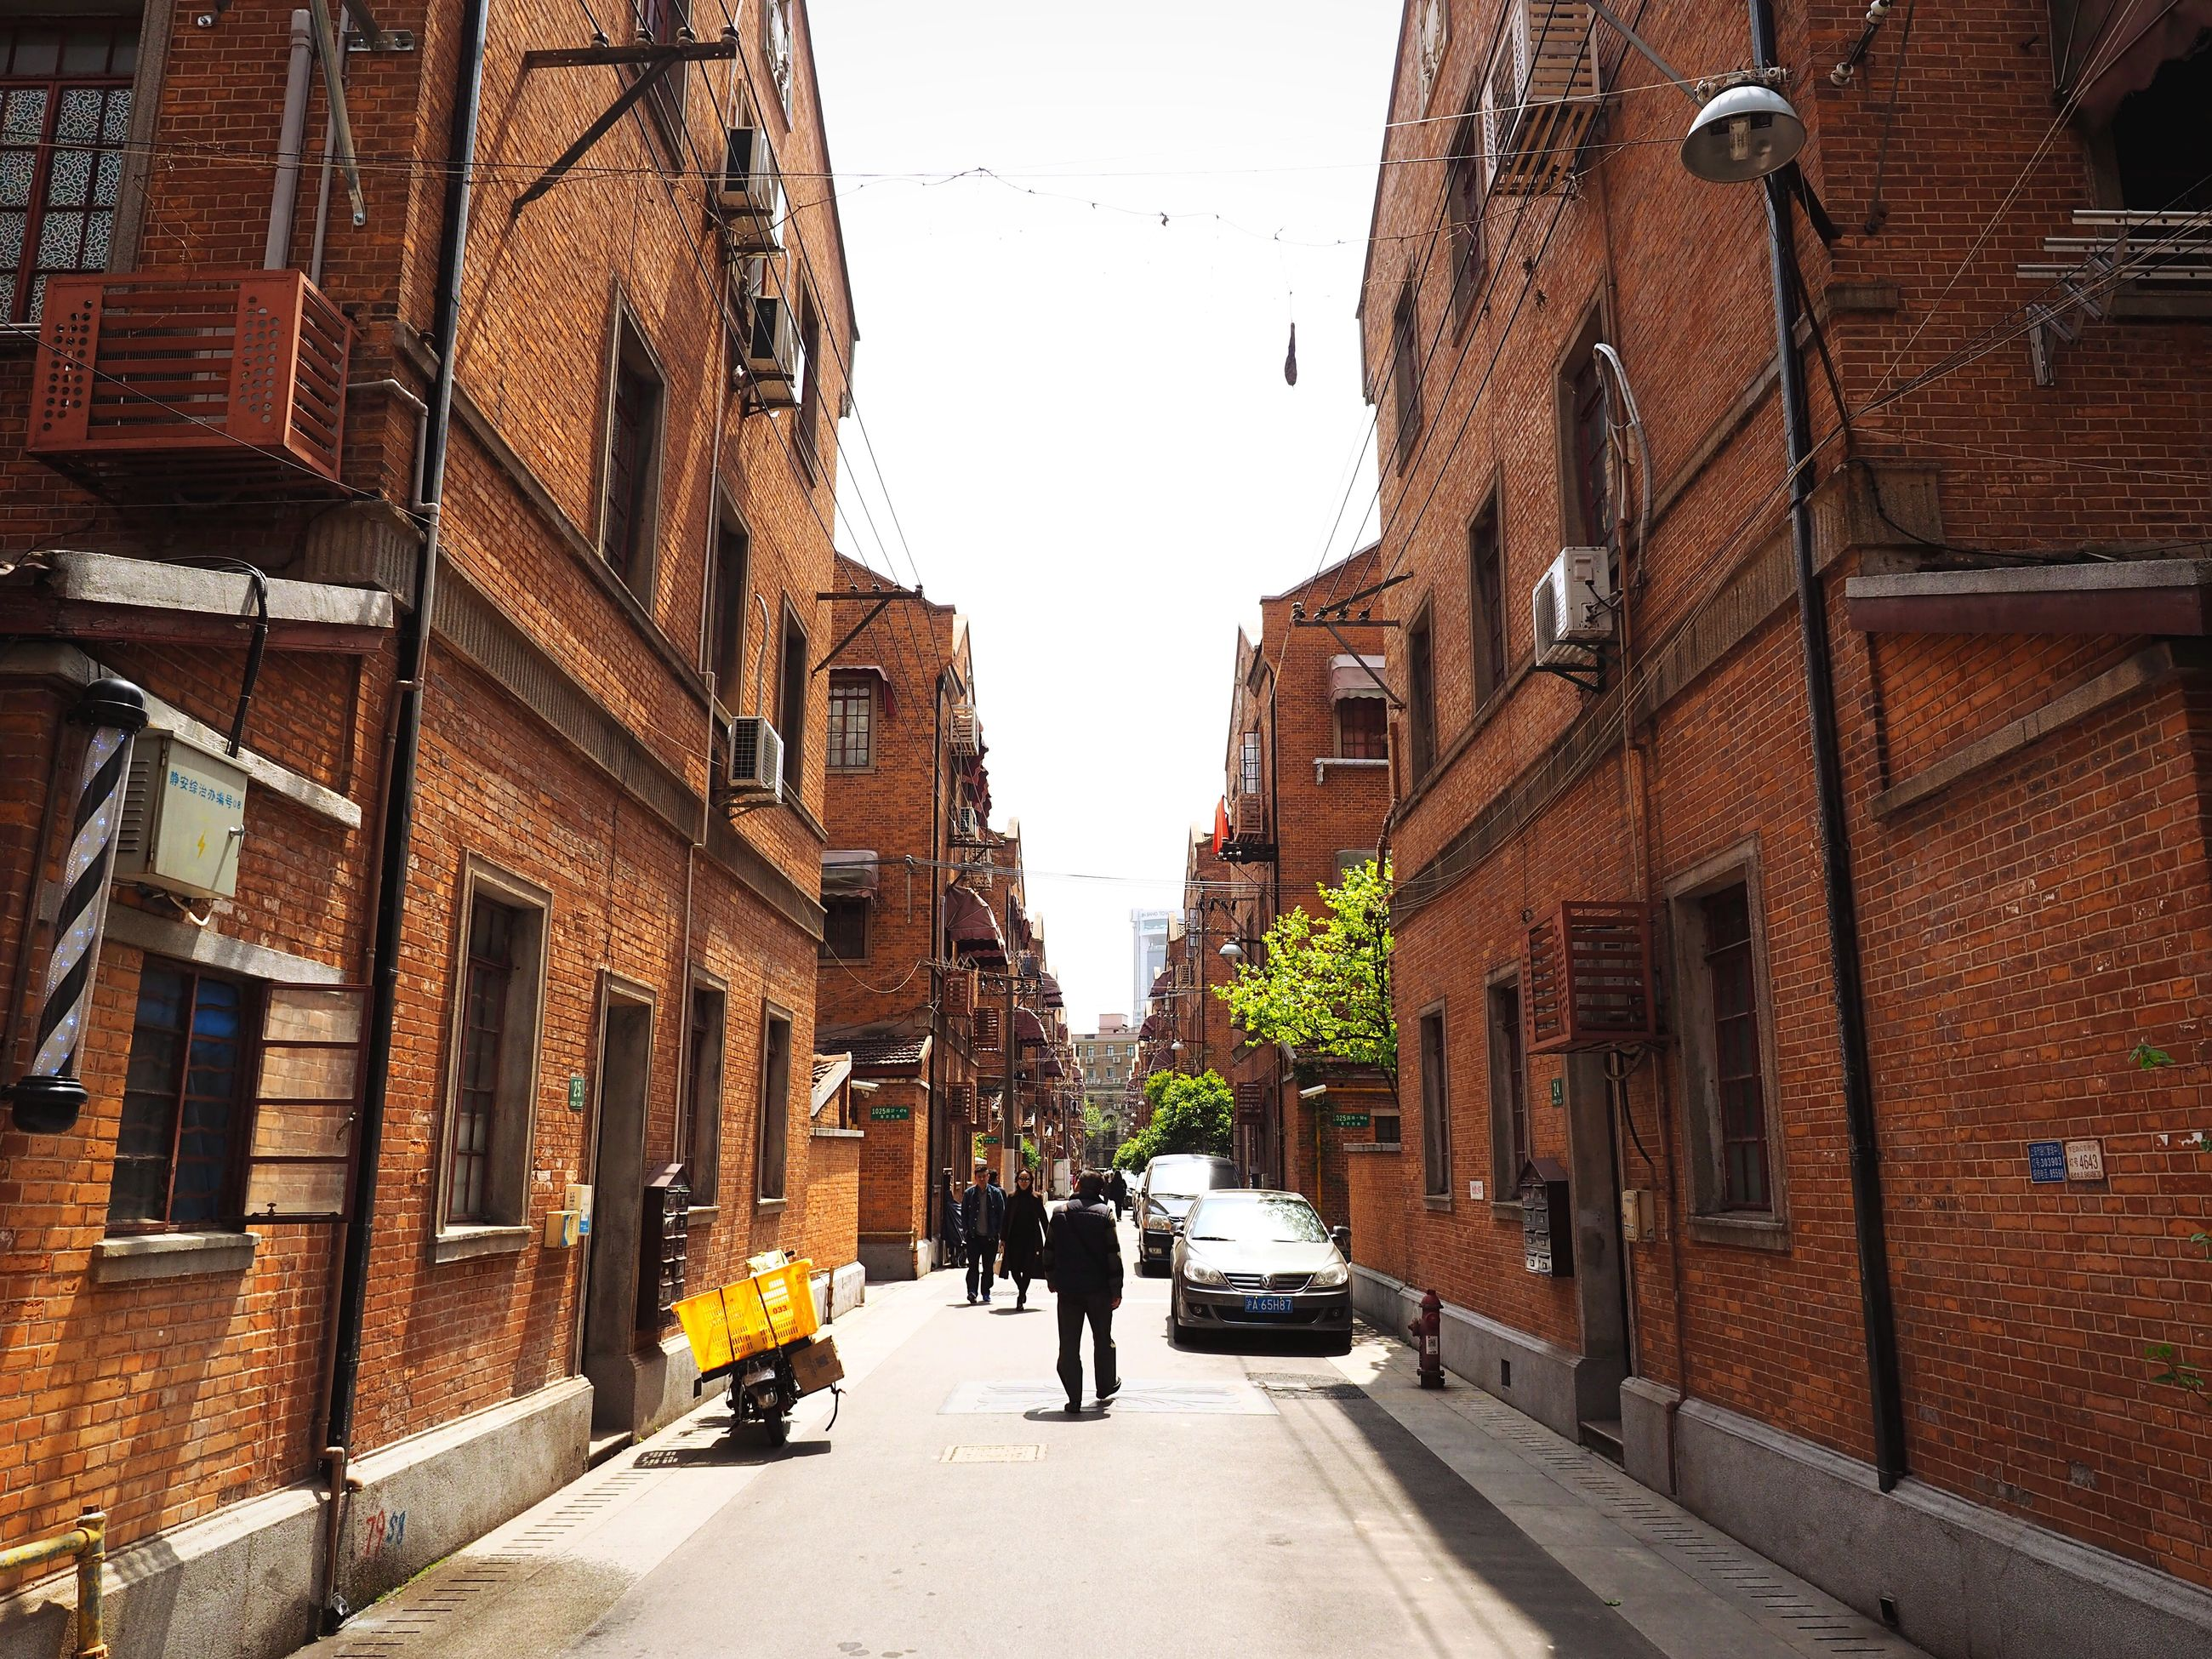 building exterior, architecture, built structure, walking, men, street, city, the way forward, person, city life, rear view, full length, lifestyles, residential building, alley, residential structure, building, transportation